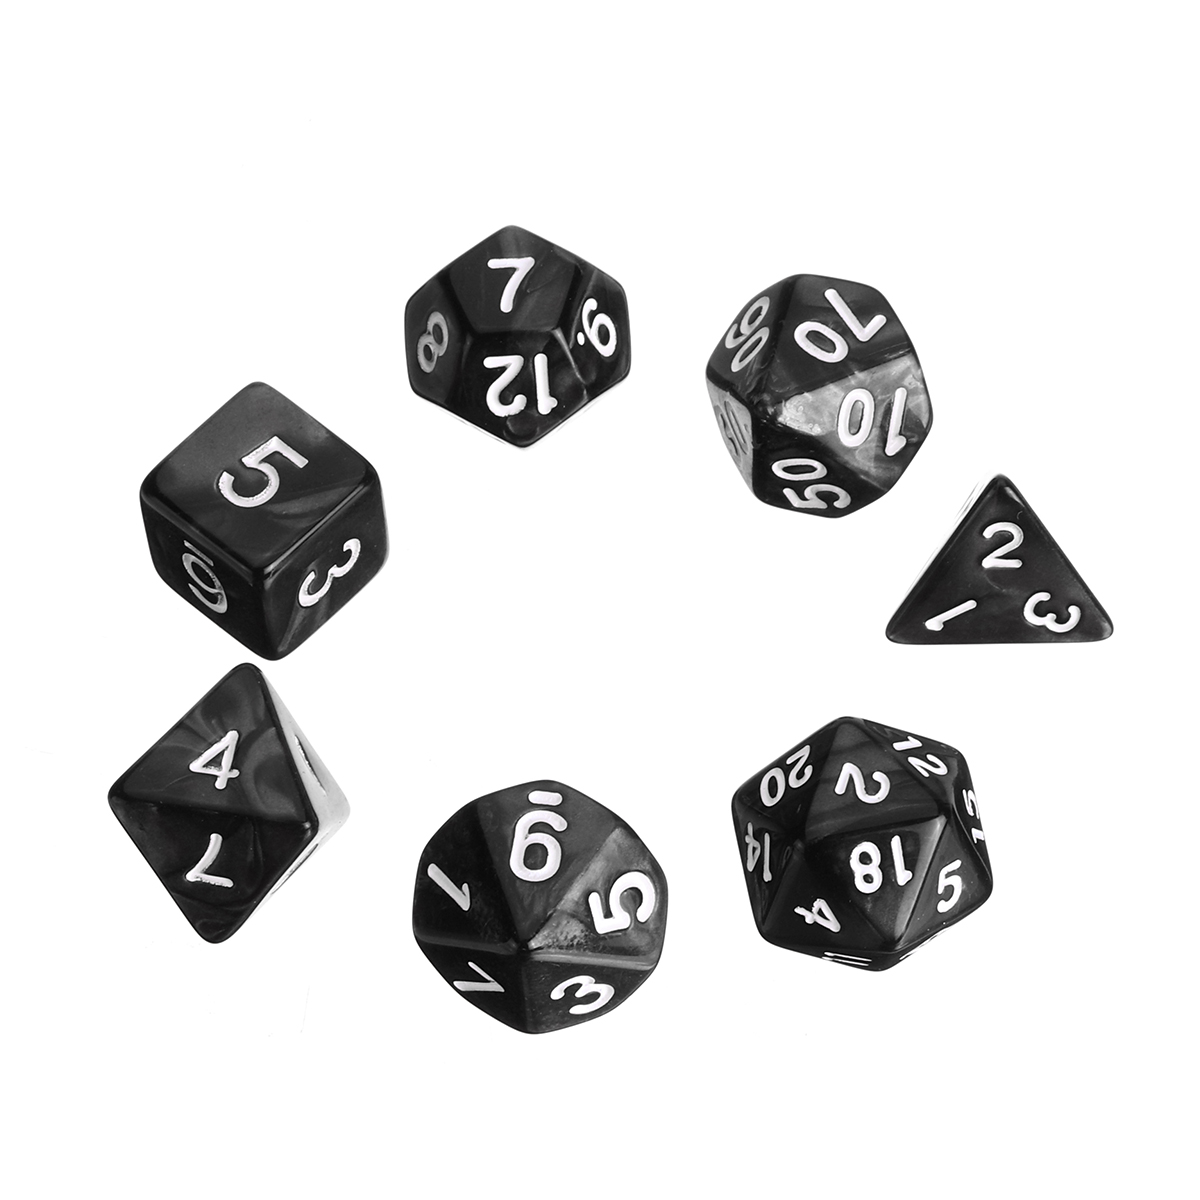 Multisided Dices Set Holder Polyhedral Dices Purple PU Leather Tray for RPG